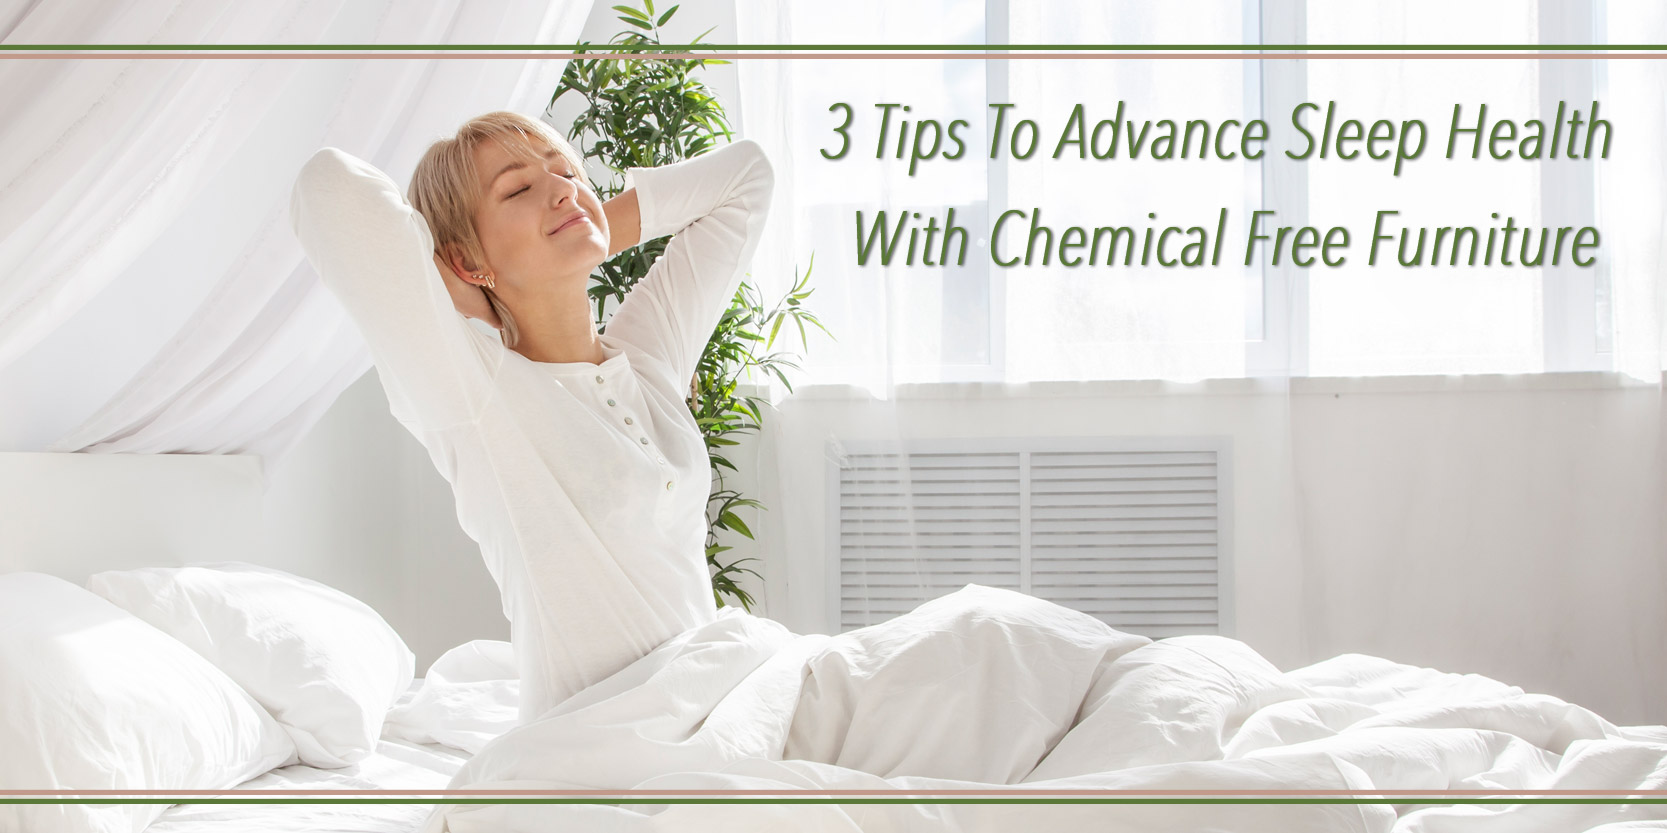 Delightful 3 Tips To Advance Sleep Health With Chemical Free Furniture